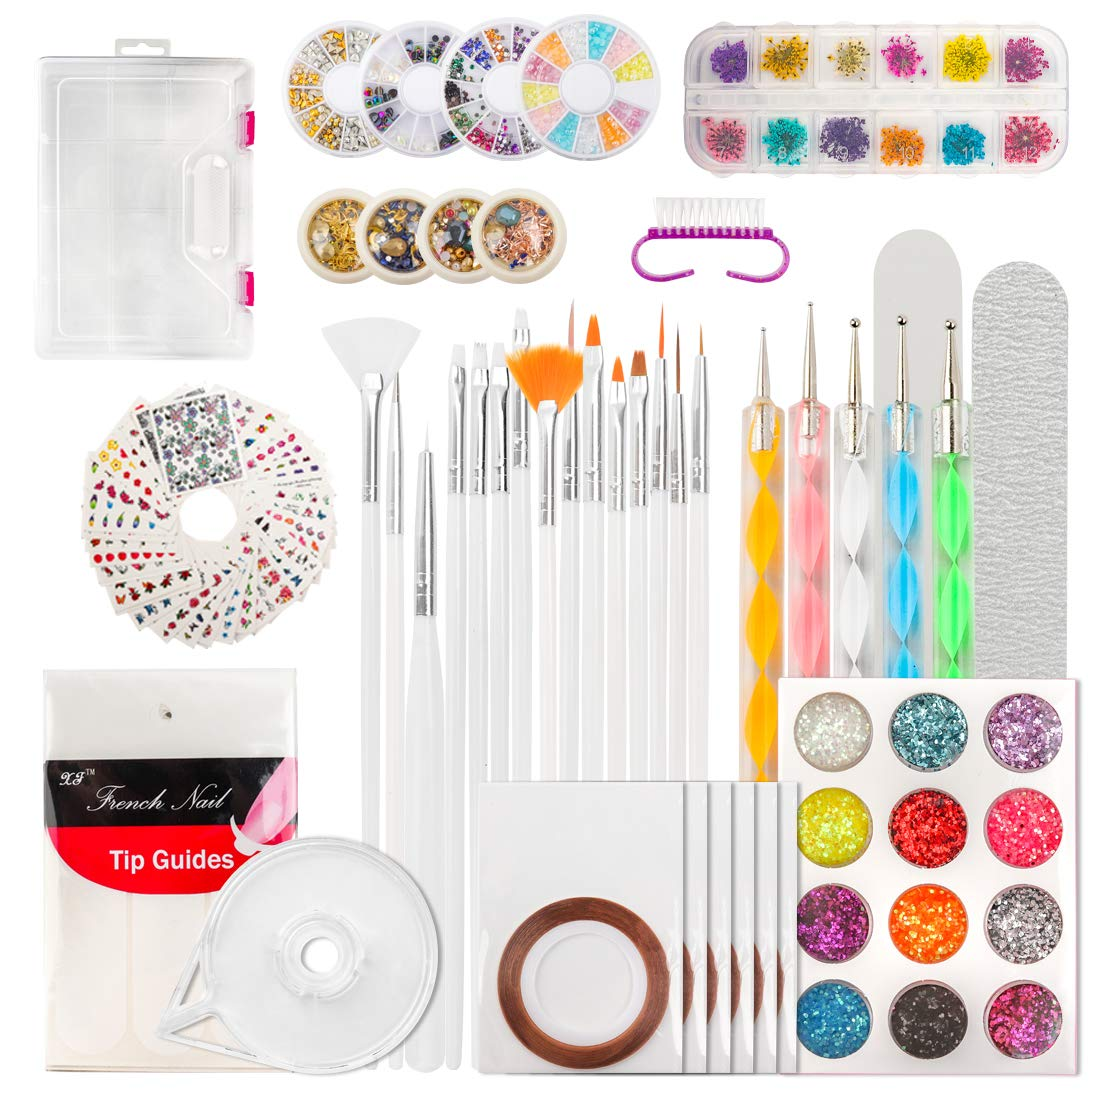 124 Tips Nail Art Kit, Yokilly DIY Nail Decoration Supplies Kit, Glitter Rhinestones, Nail Tip Line Sticker Decal, Dotting Pen, Nail Dried Flowers, Clean Brush, Nail Design Supplies with Gift Box by AMAR Beauty